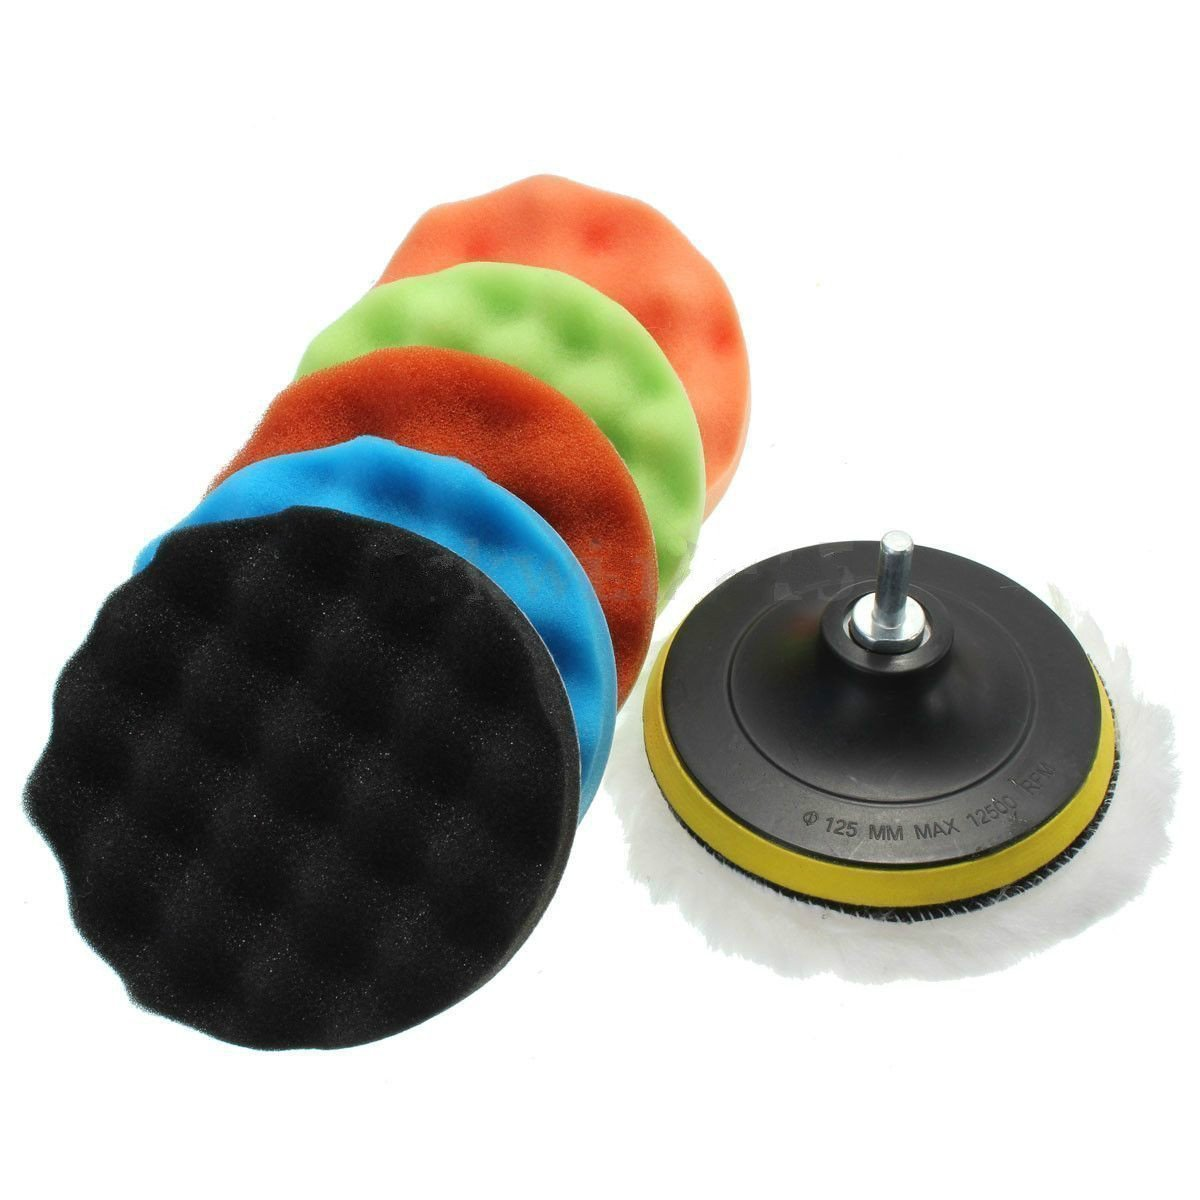 Yosoo Auto Car Polisher Car Polishing Waxing Foam Sponge Buffer Buffing Pads Set (7 inch)